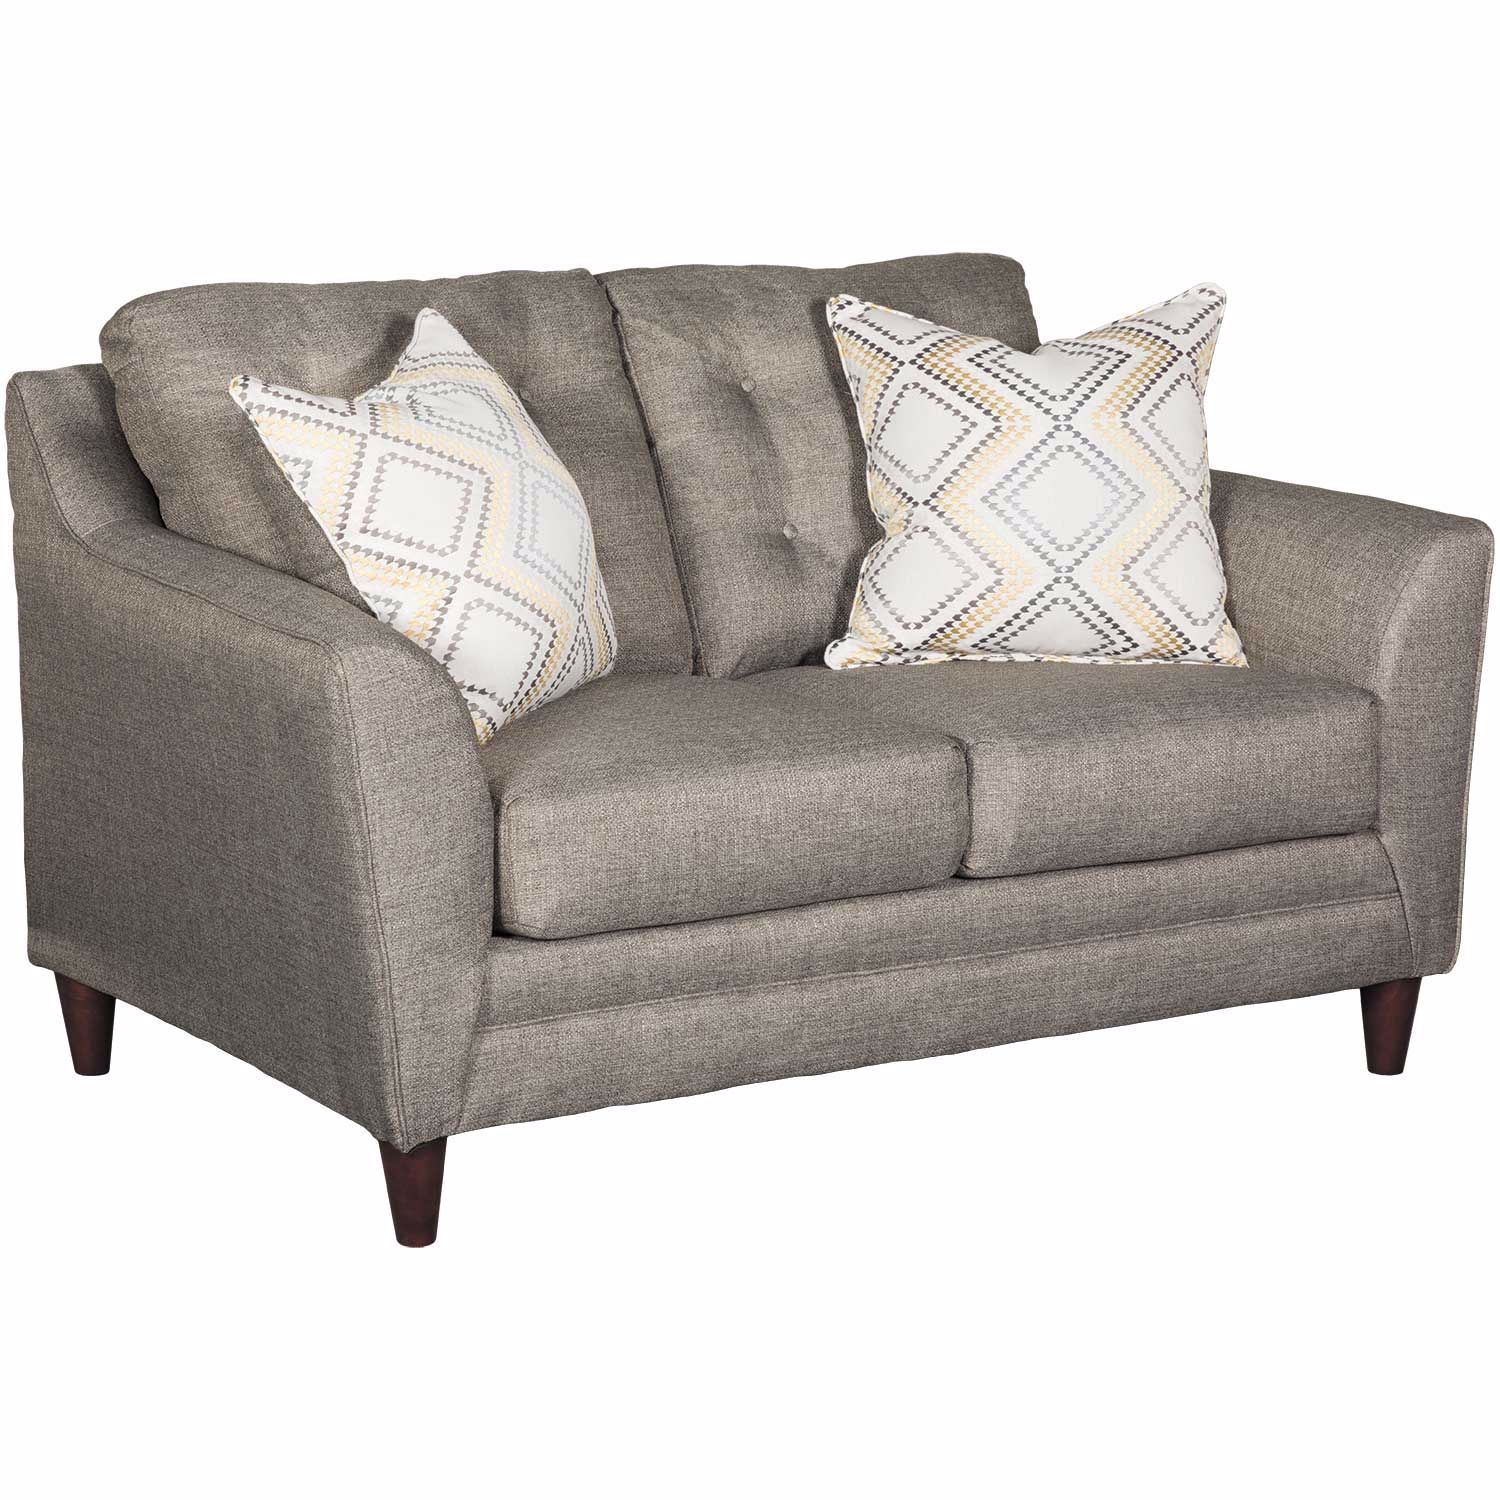 Jensen Sofa Bed Next Jensen Grey Tufted Loveseat